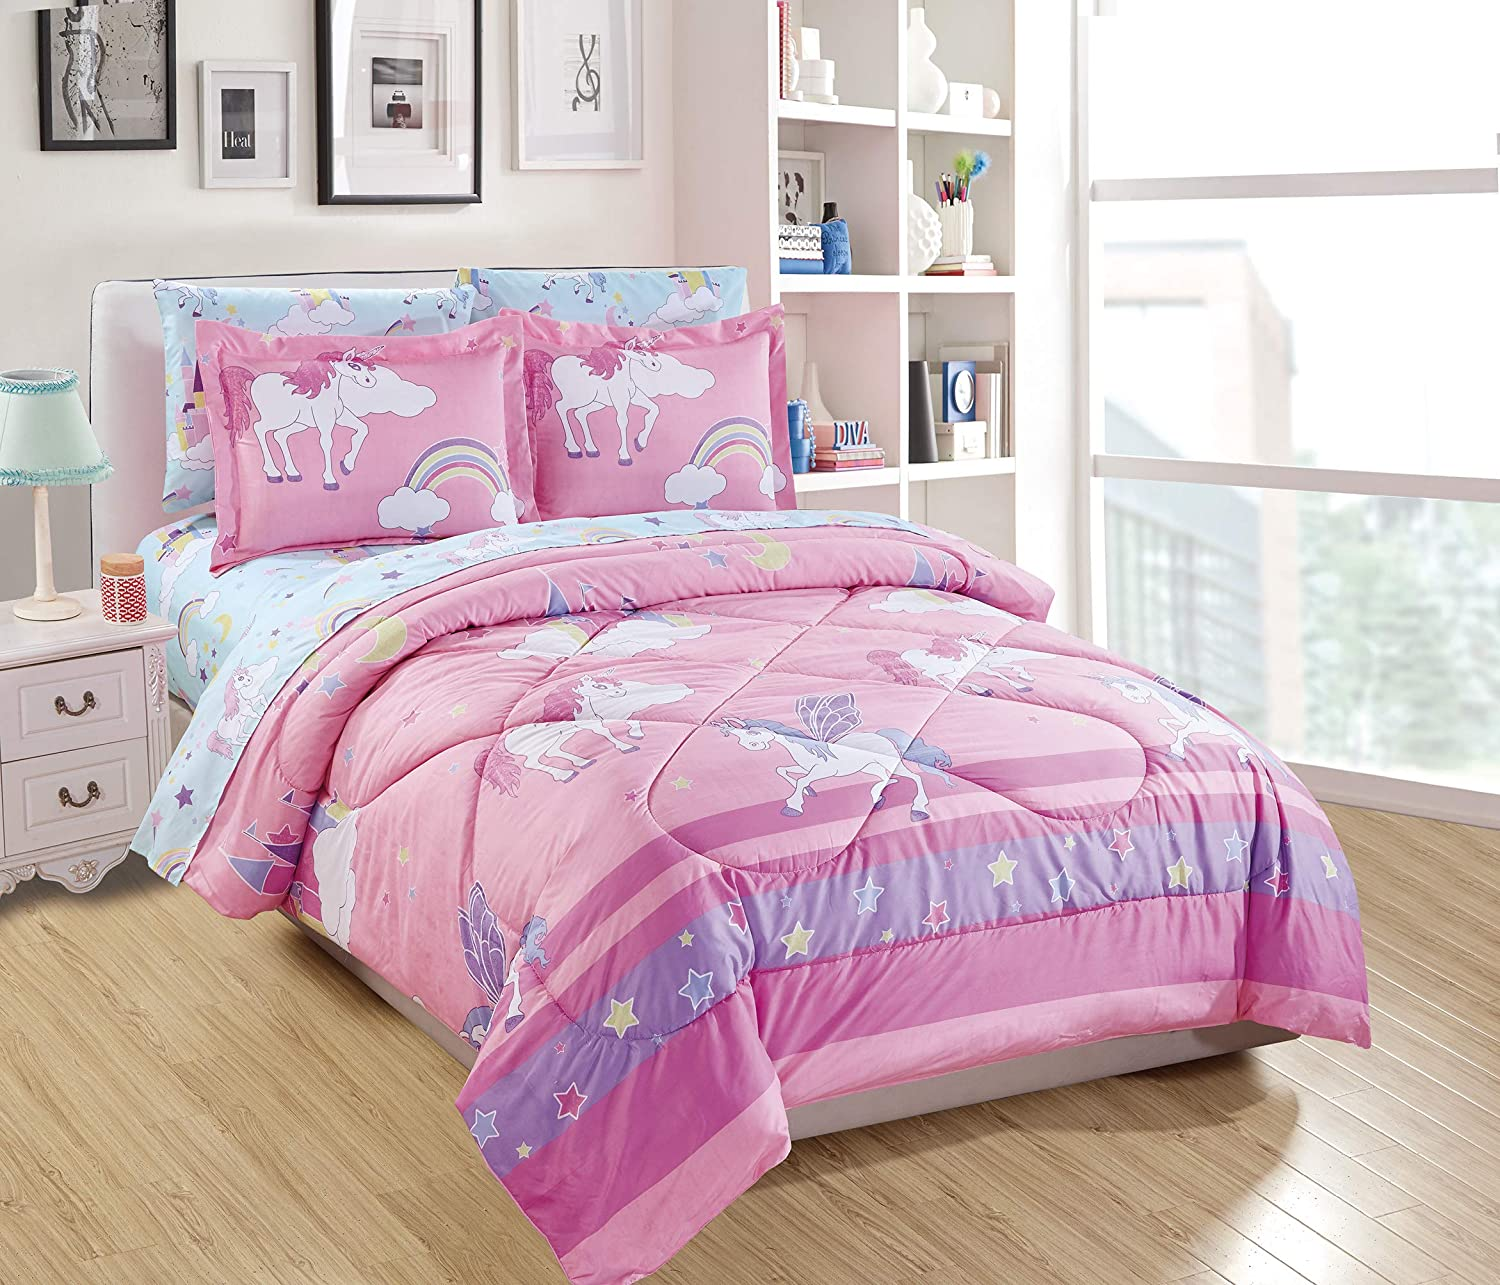 Linen Plus Twin Size 5pc Comforter Set for Girls/Teens Unicorn Rainbow Castle Pink Purple Yellow White New